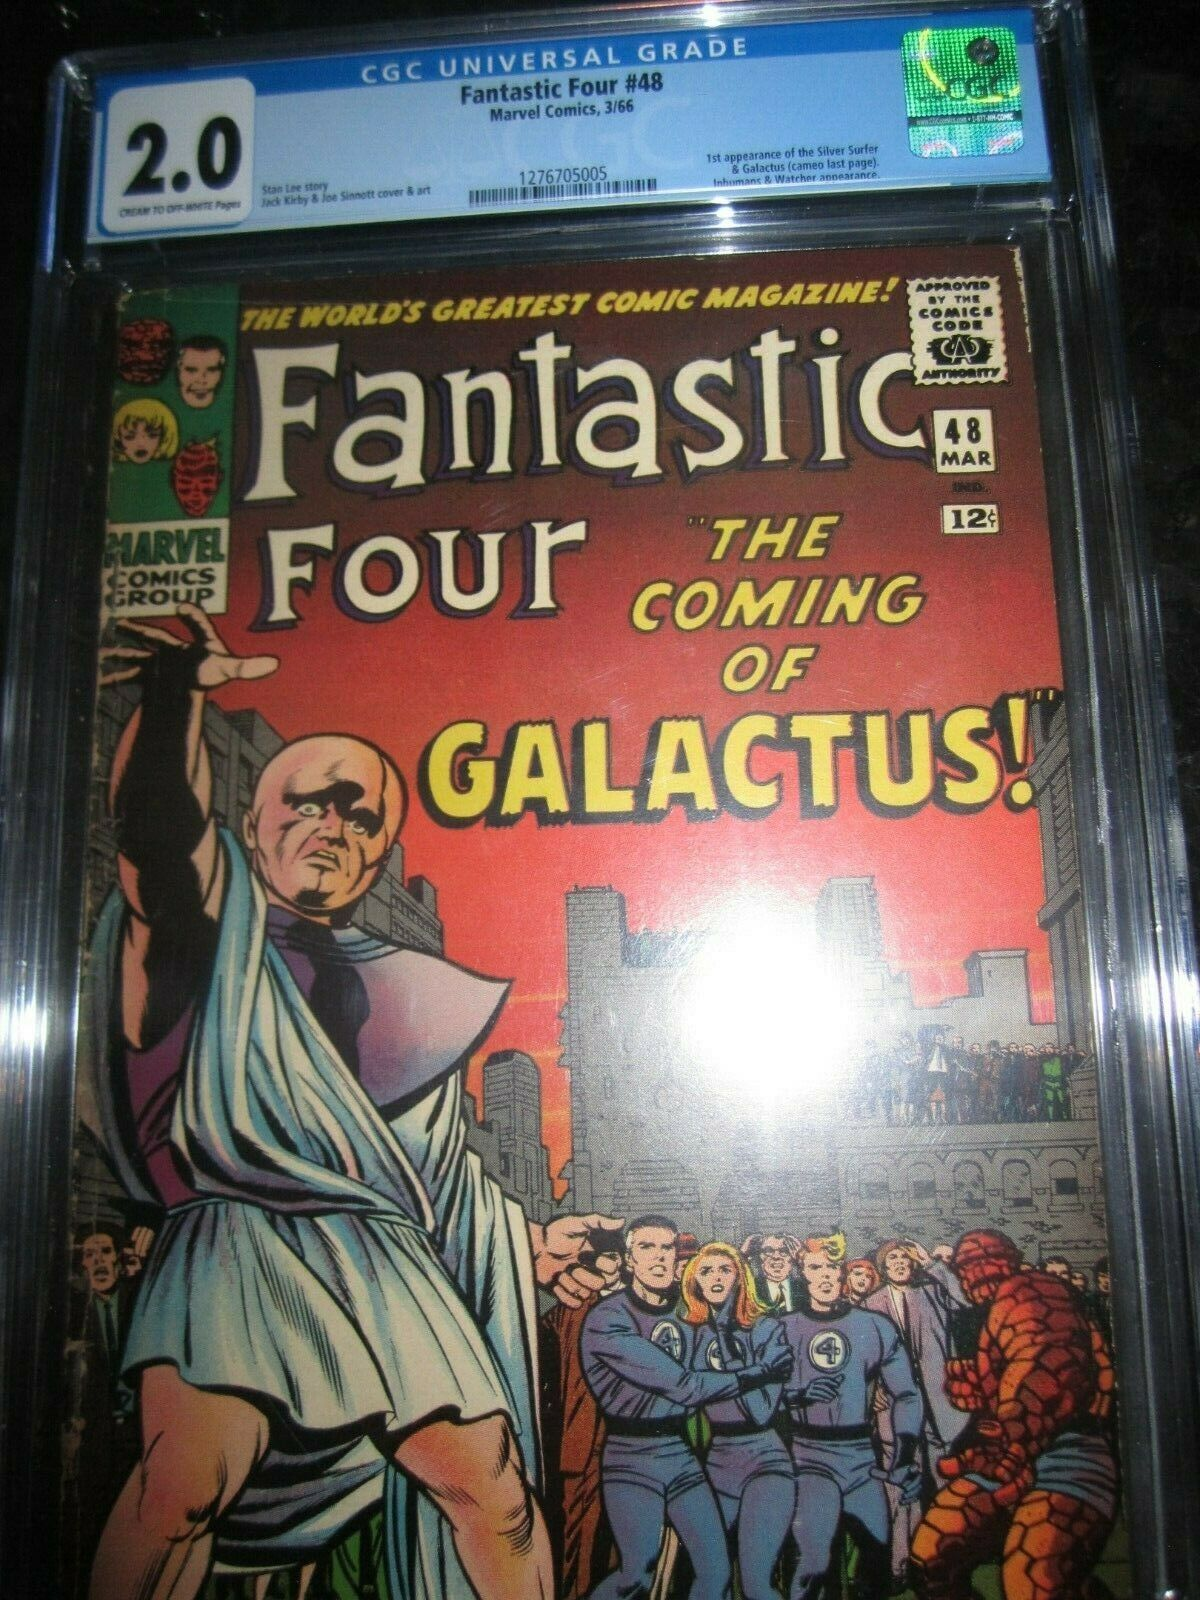 Fantastic Four #48 CGC 2.0 First appearance of Silver Surfer Galactus 1 2 3 4